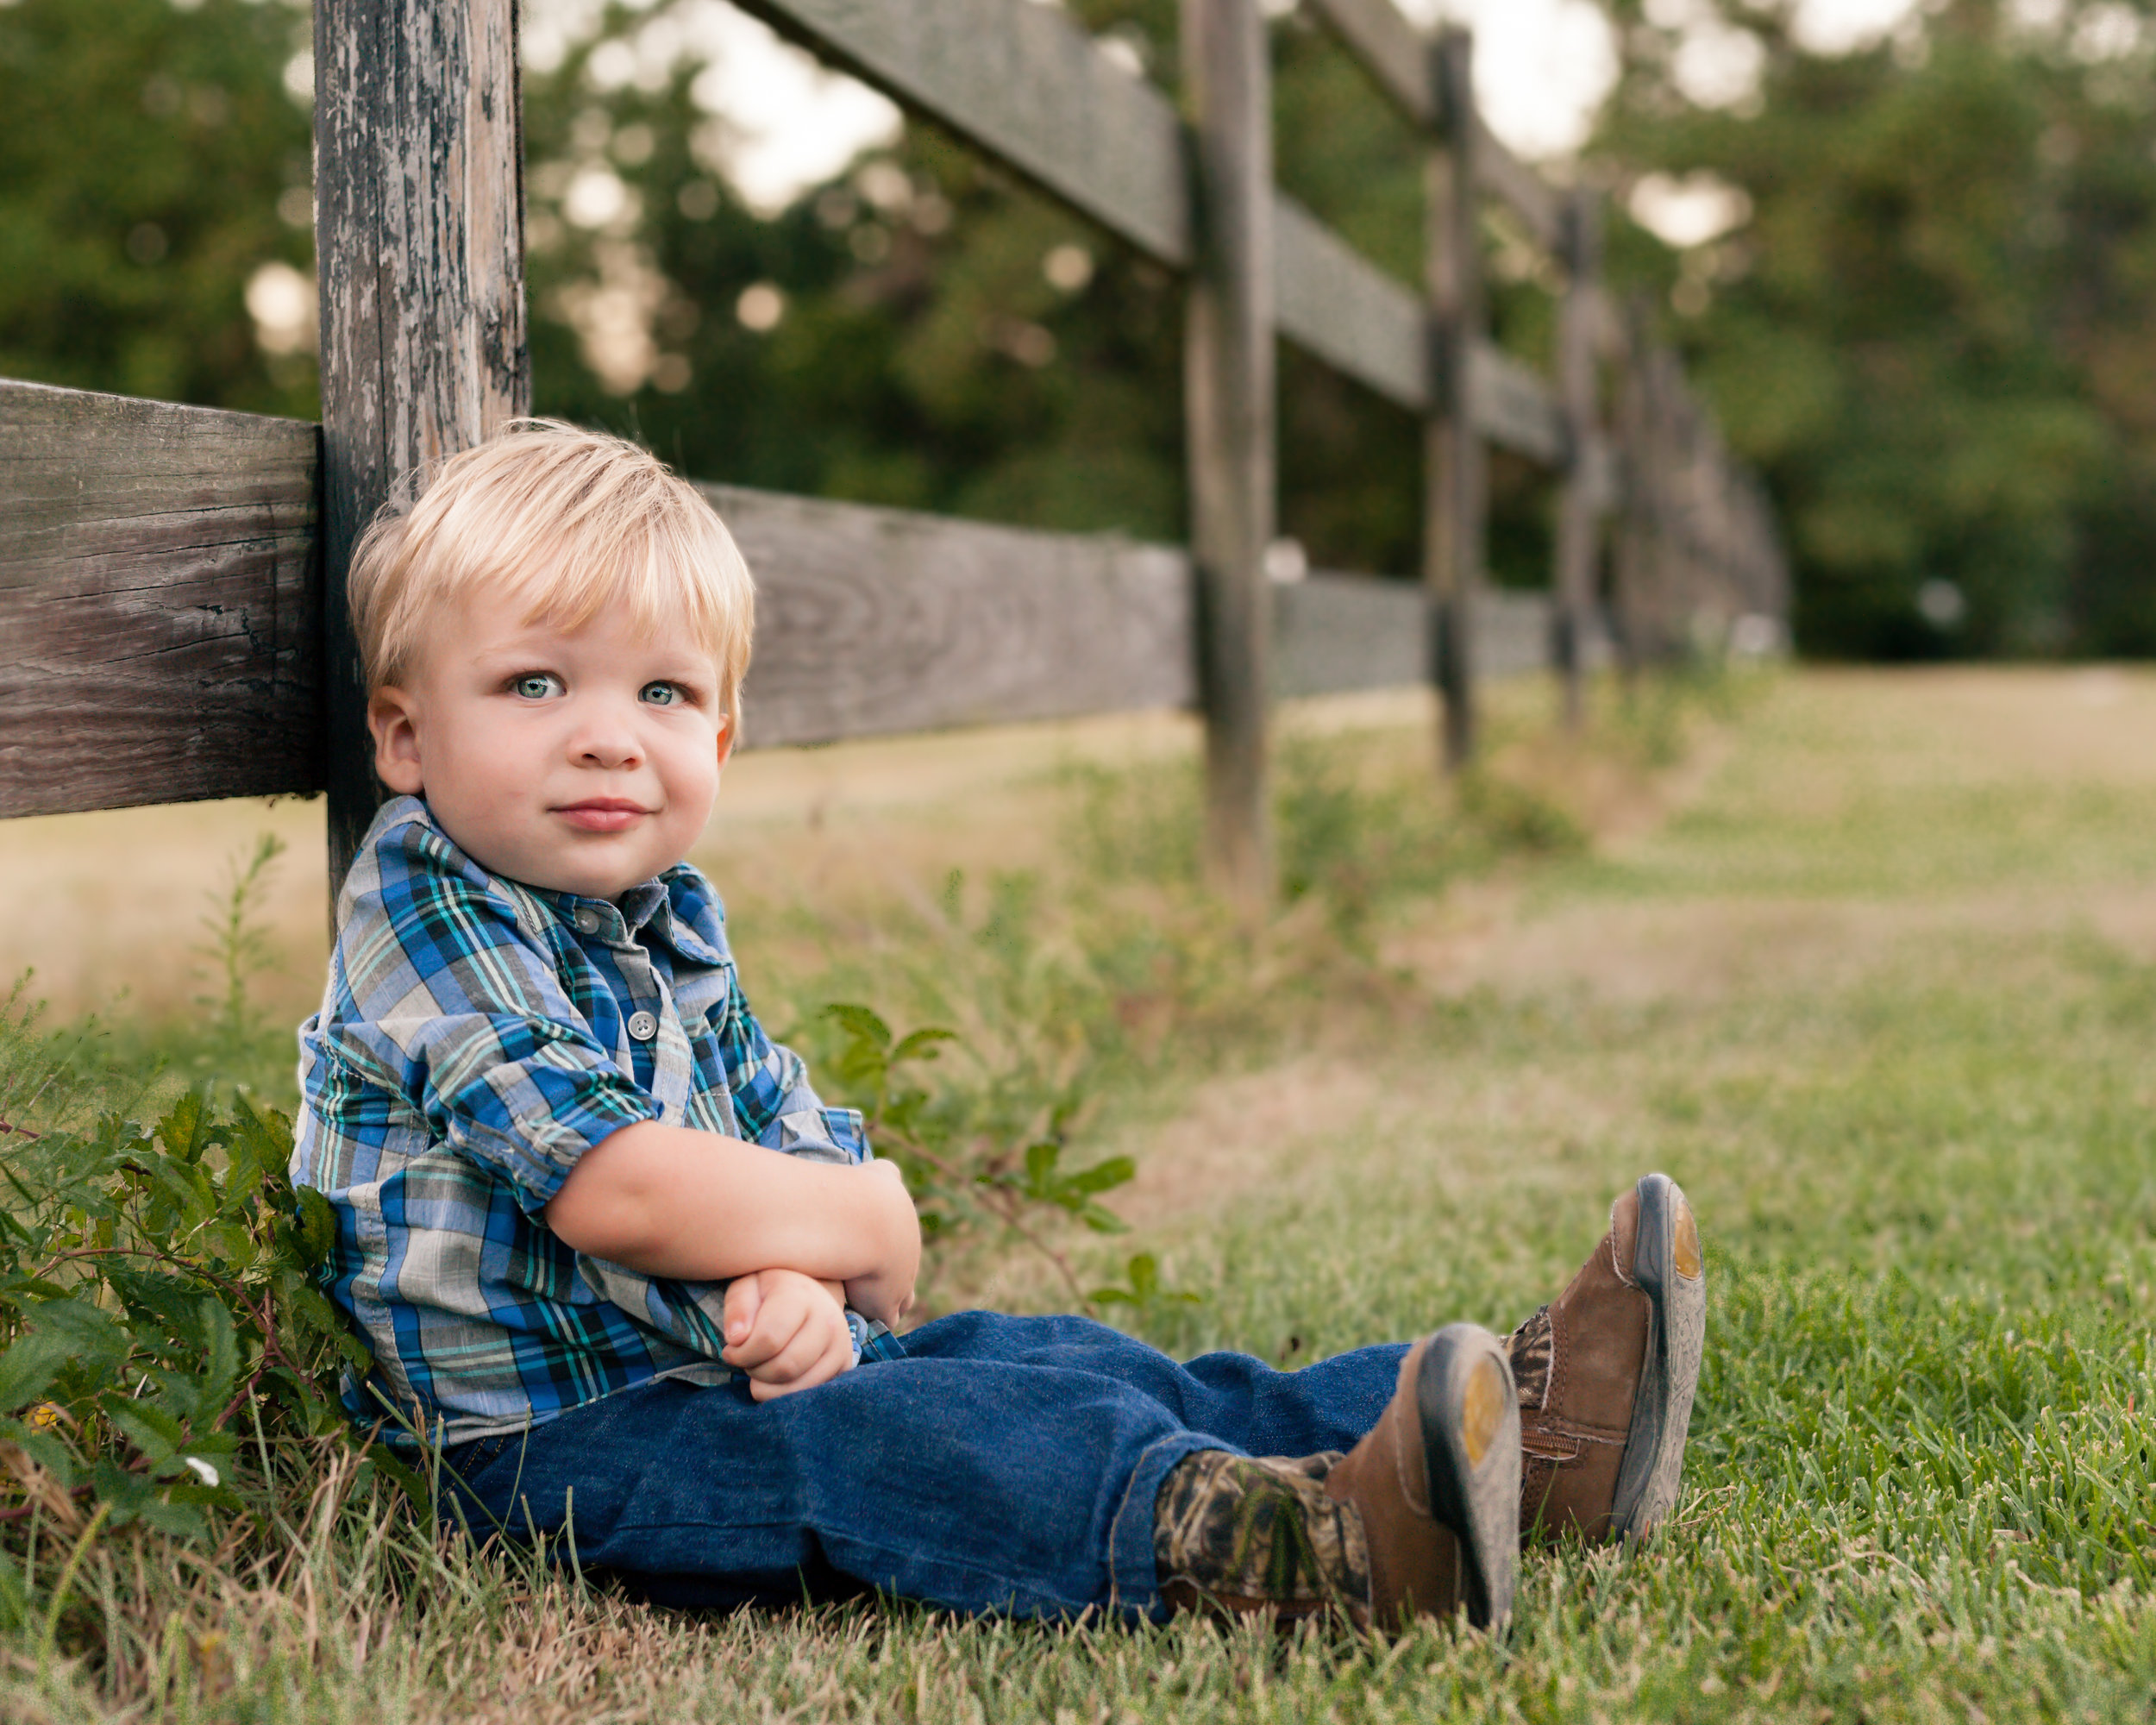 sweet boy sitting by a fence with junebug photography studio in manhattan, ks